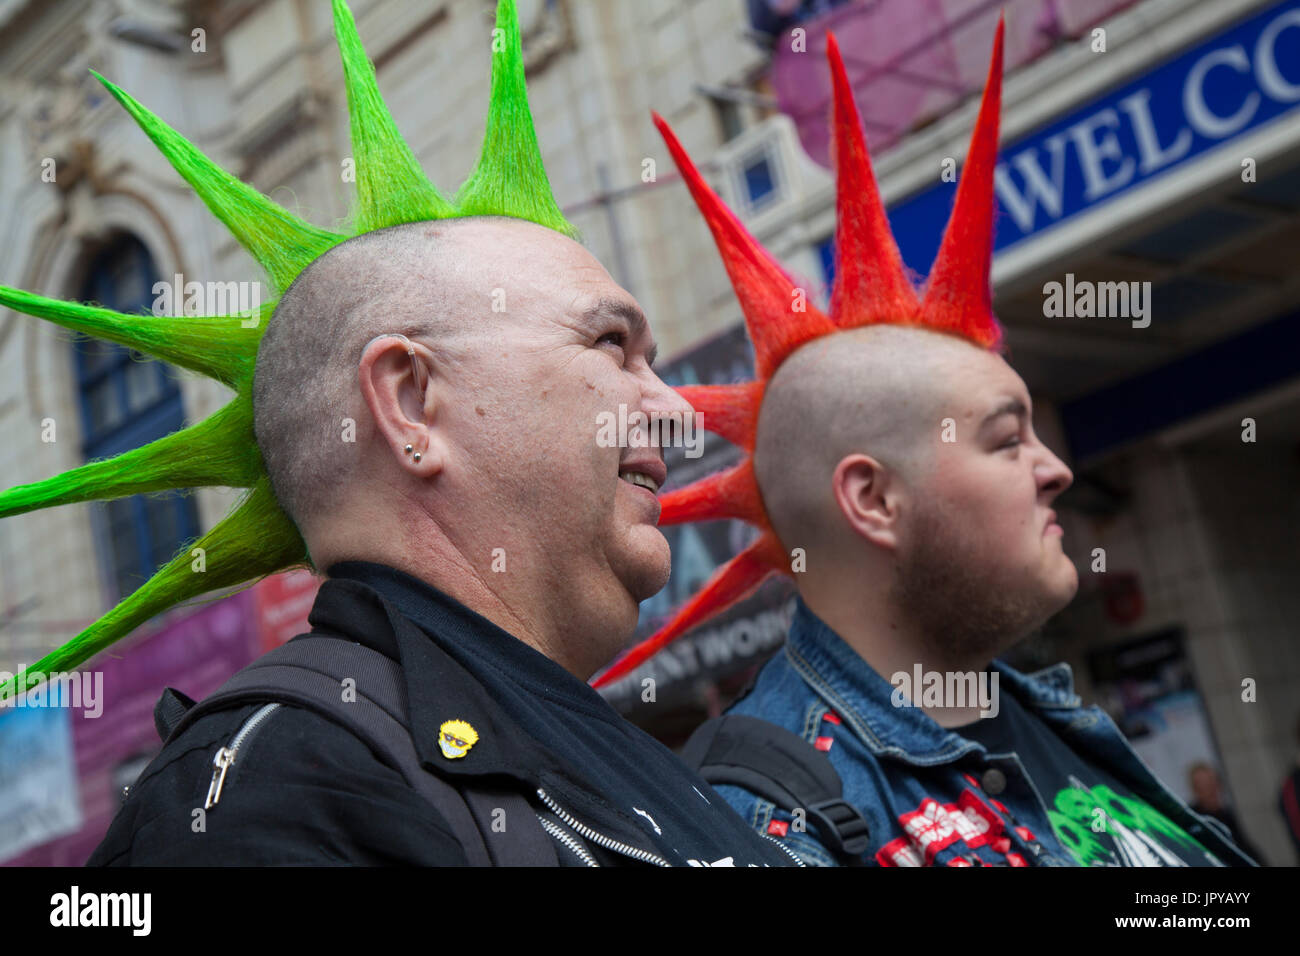 """Blackpool, Lancashire, UK. 3rd August, 2017. Damien & George_Rebellion Festival world's largest punk festival begins as thousands of punks arrive in Blackpool for international punk festival. At the beginning of August, Blackpool's Winter Gardens plays host to a massive line up of punk bands for the 21st edition of Rebellion Festival. There's a fringe fest running alongside the main event. Called """"At the Edge"""" with an art exhibition, vintage clothing and a dedicated Dr Martens stall. Credit; MediaWorldImages/AlamyLiveNews. - Stock Image"""